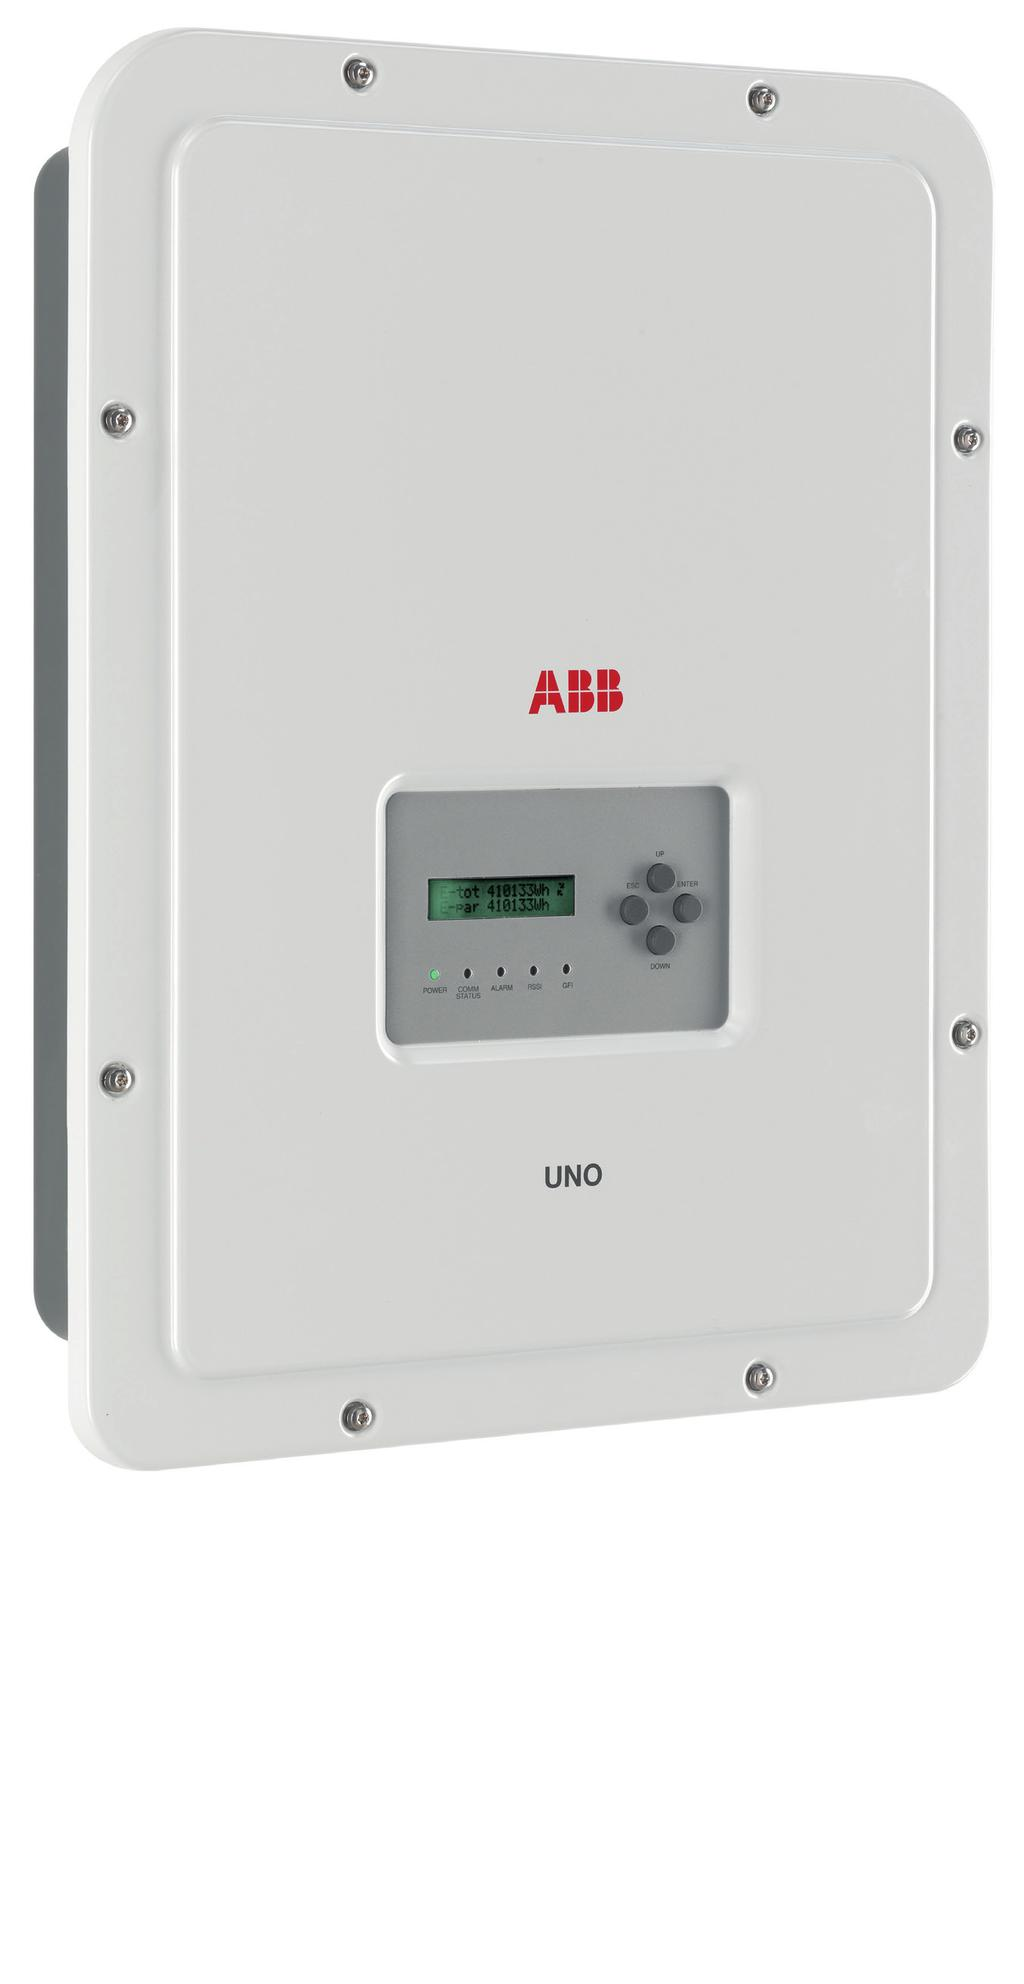 Abb Solar Inverters Product Manual Uno Dm 12 20 33 40 46 50 Under Current Relay 1